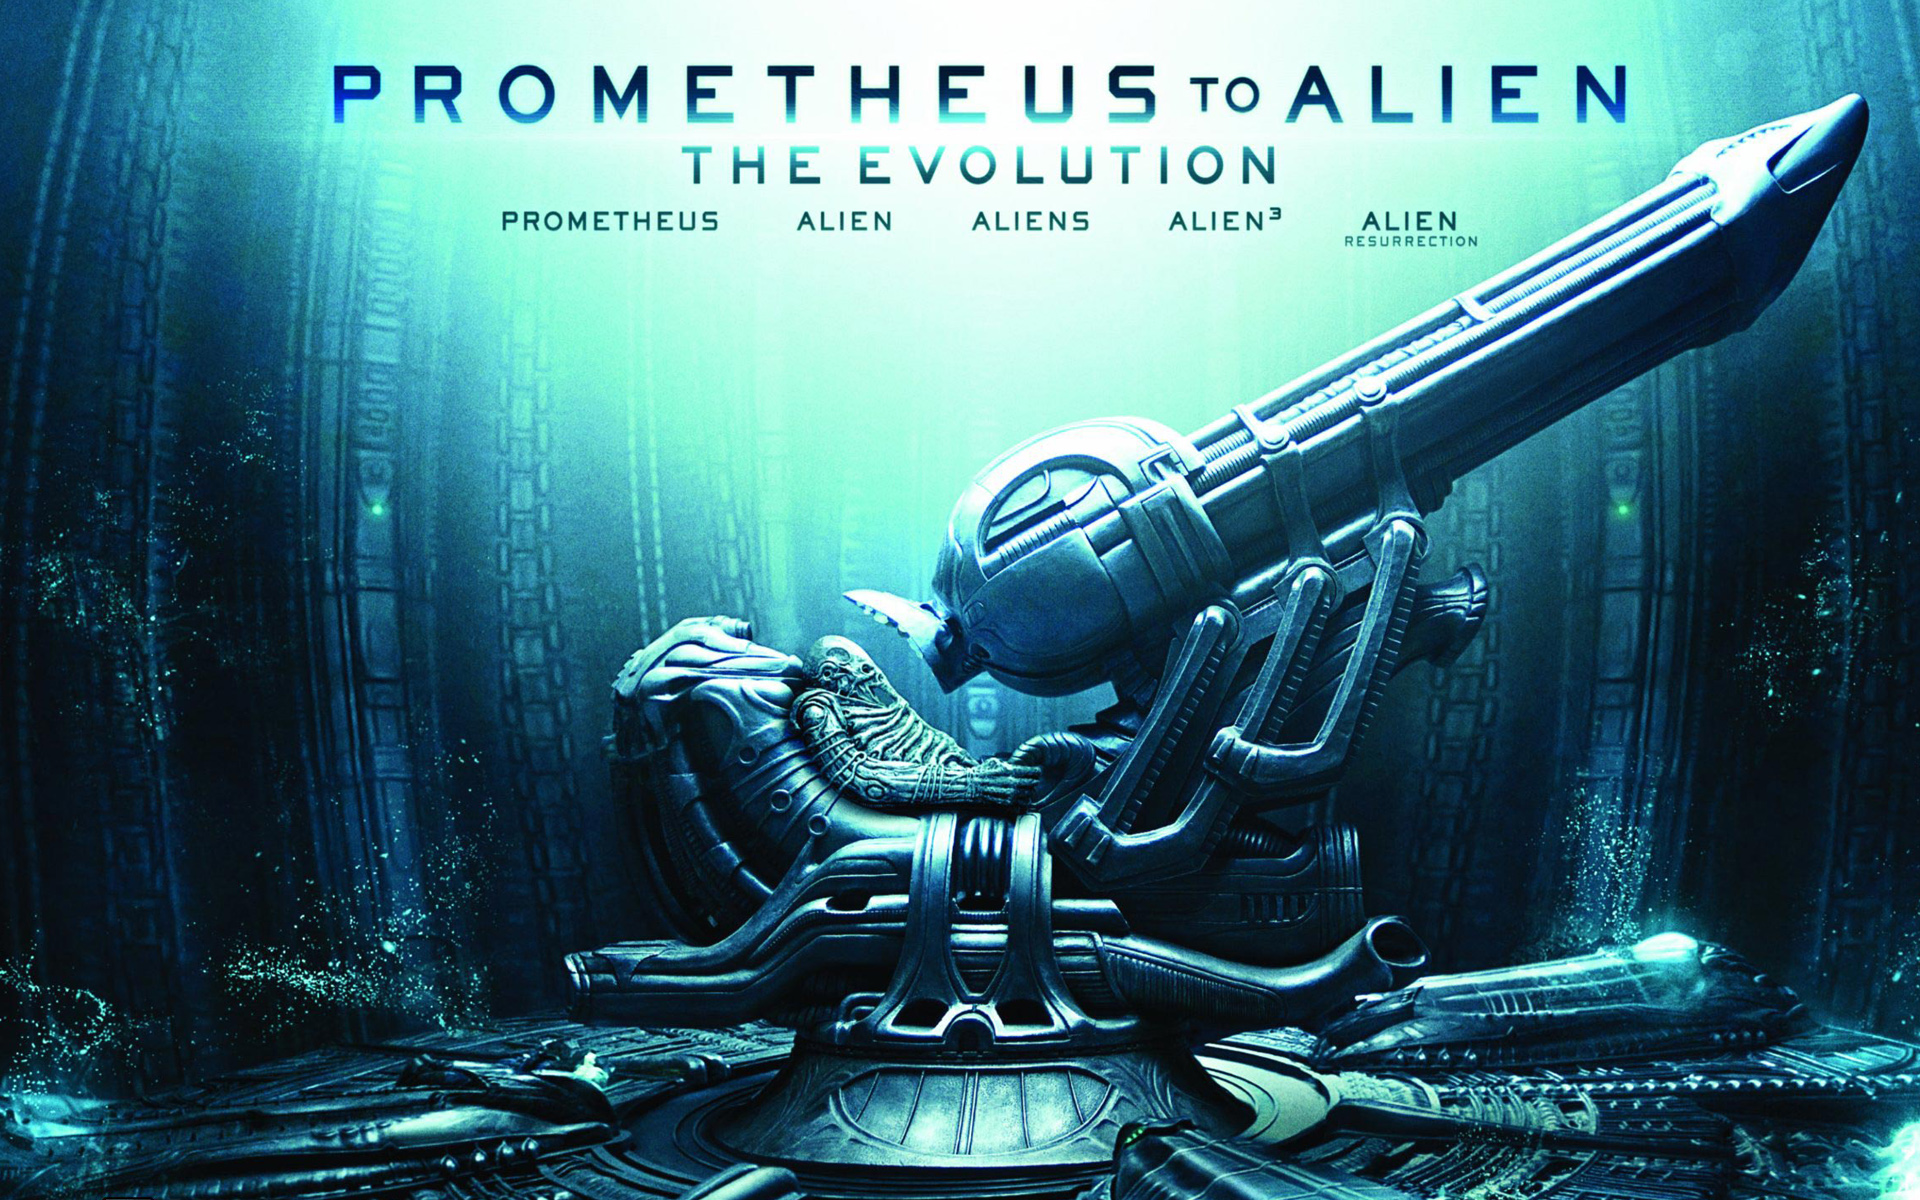 Prometheus to Alien The Evolution wallpaper